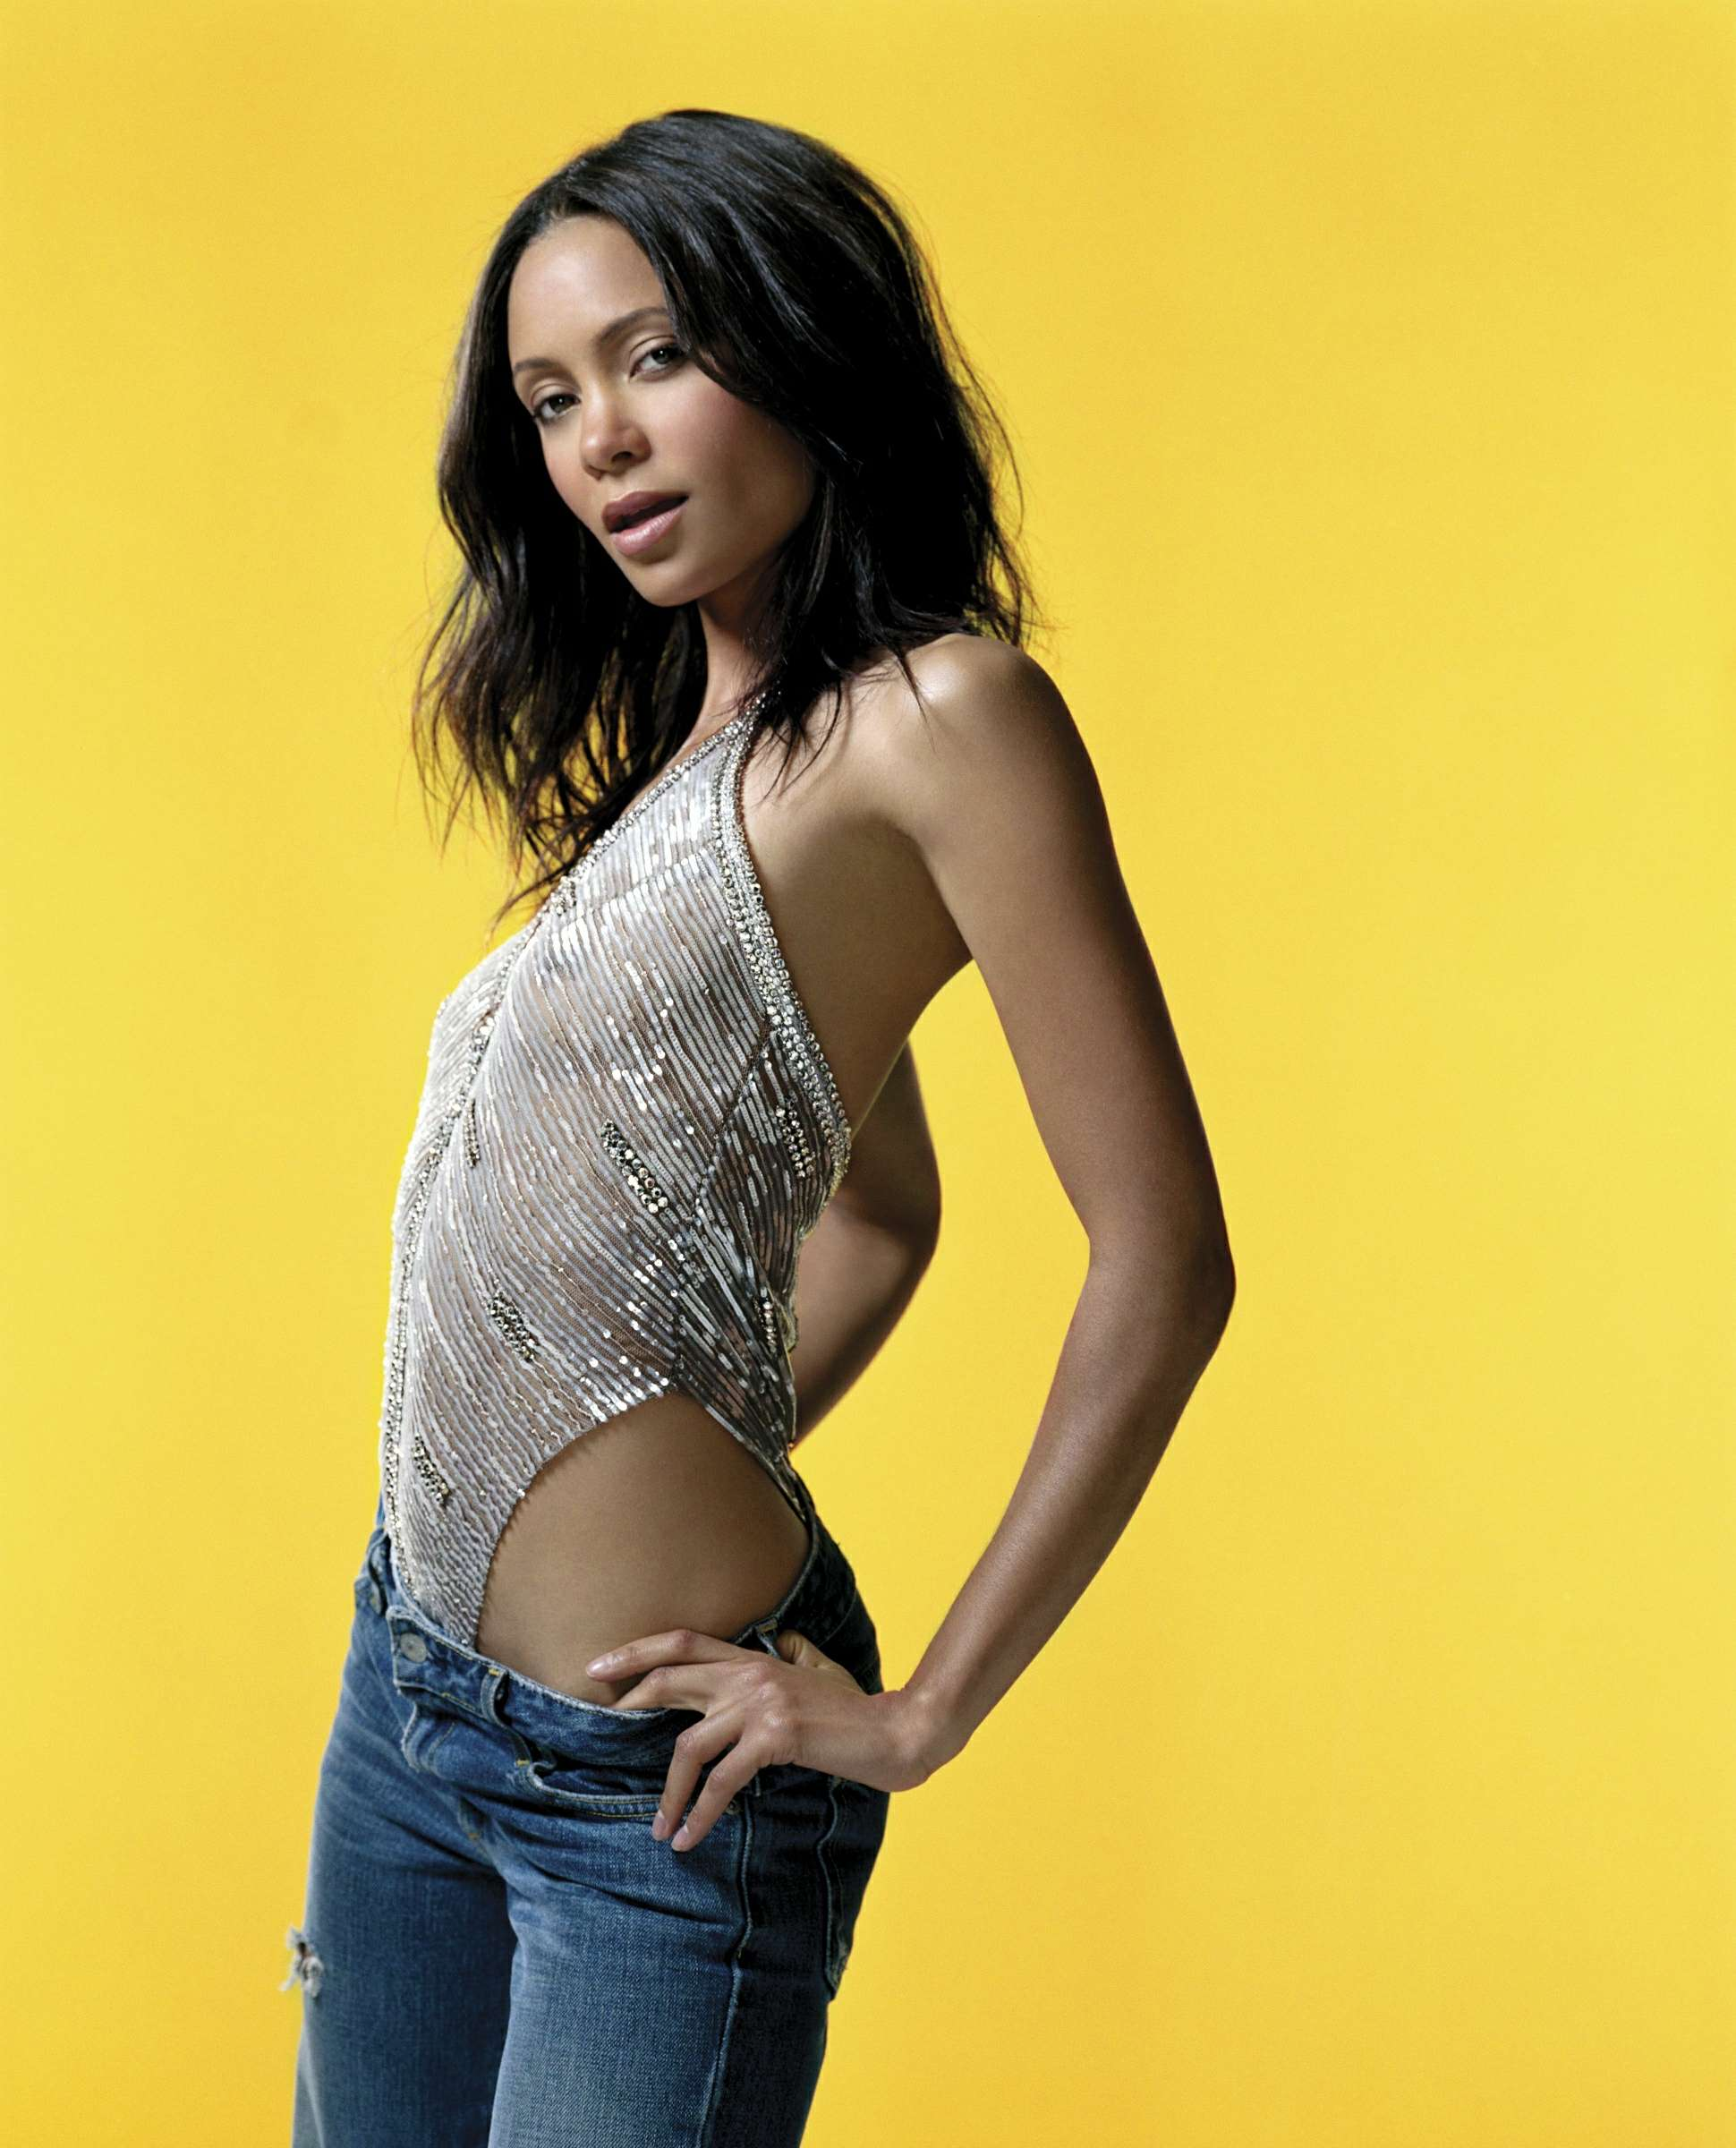 Thandie newton hot